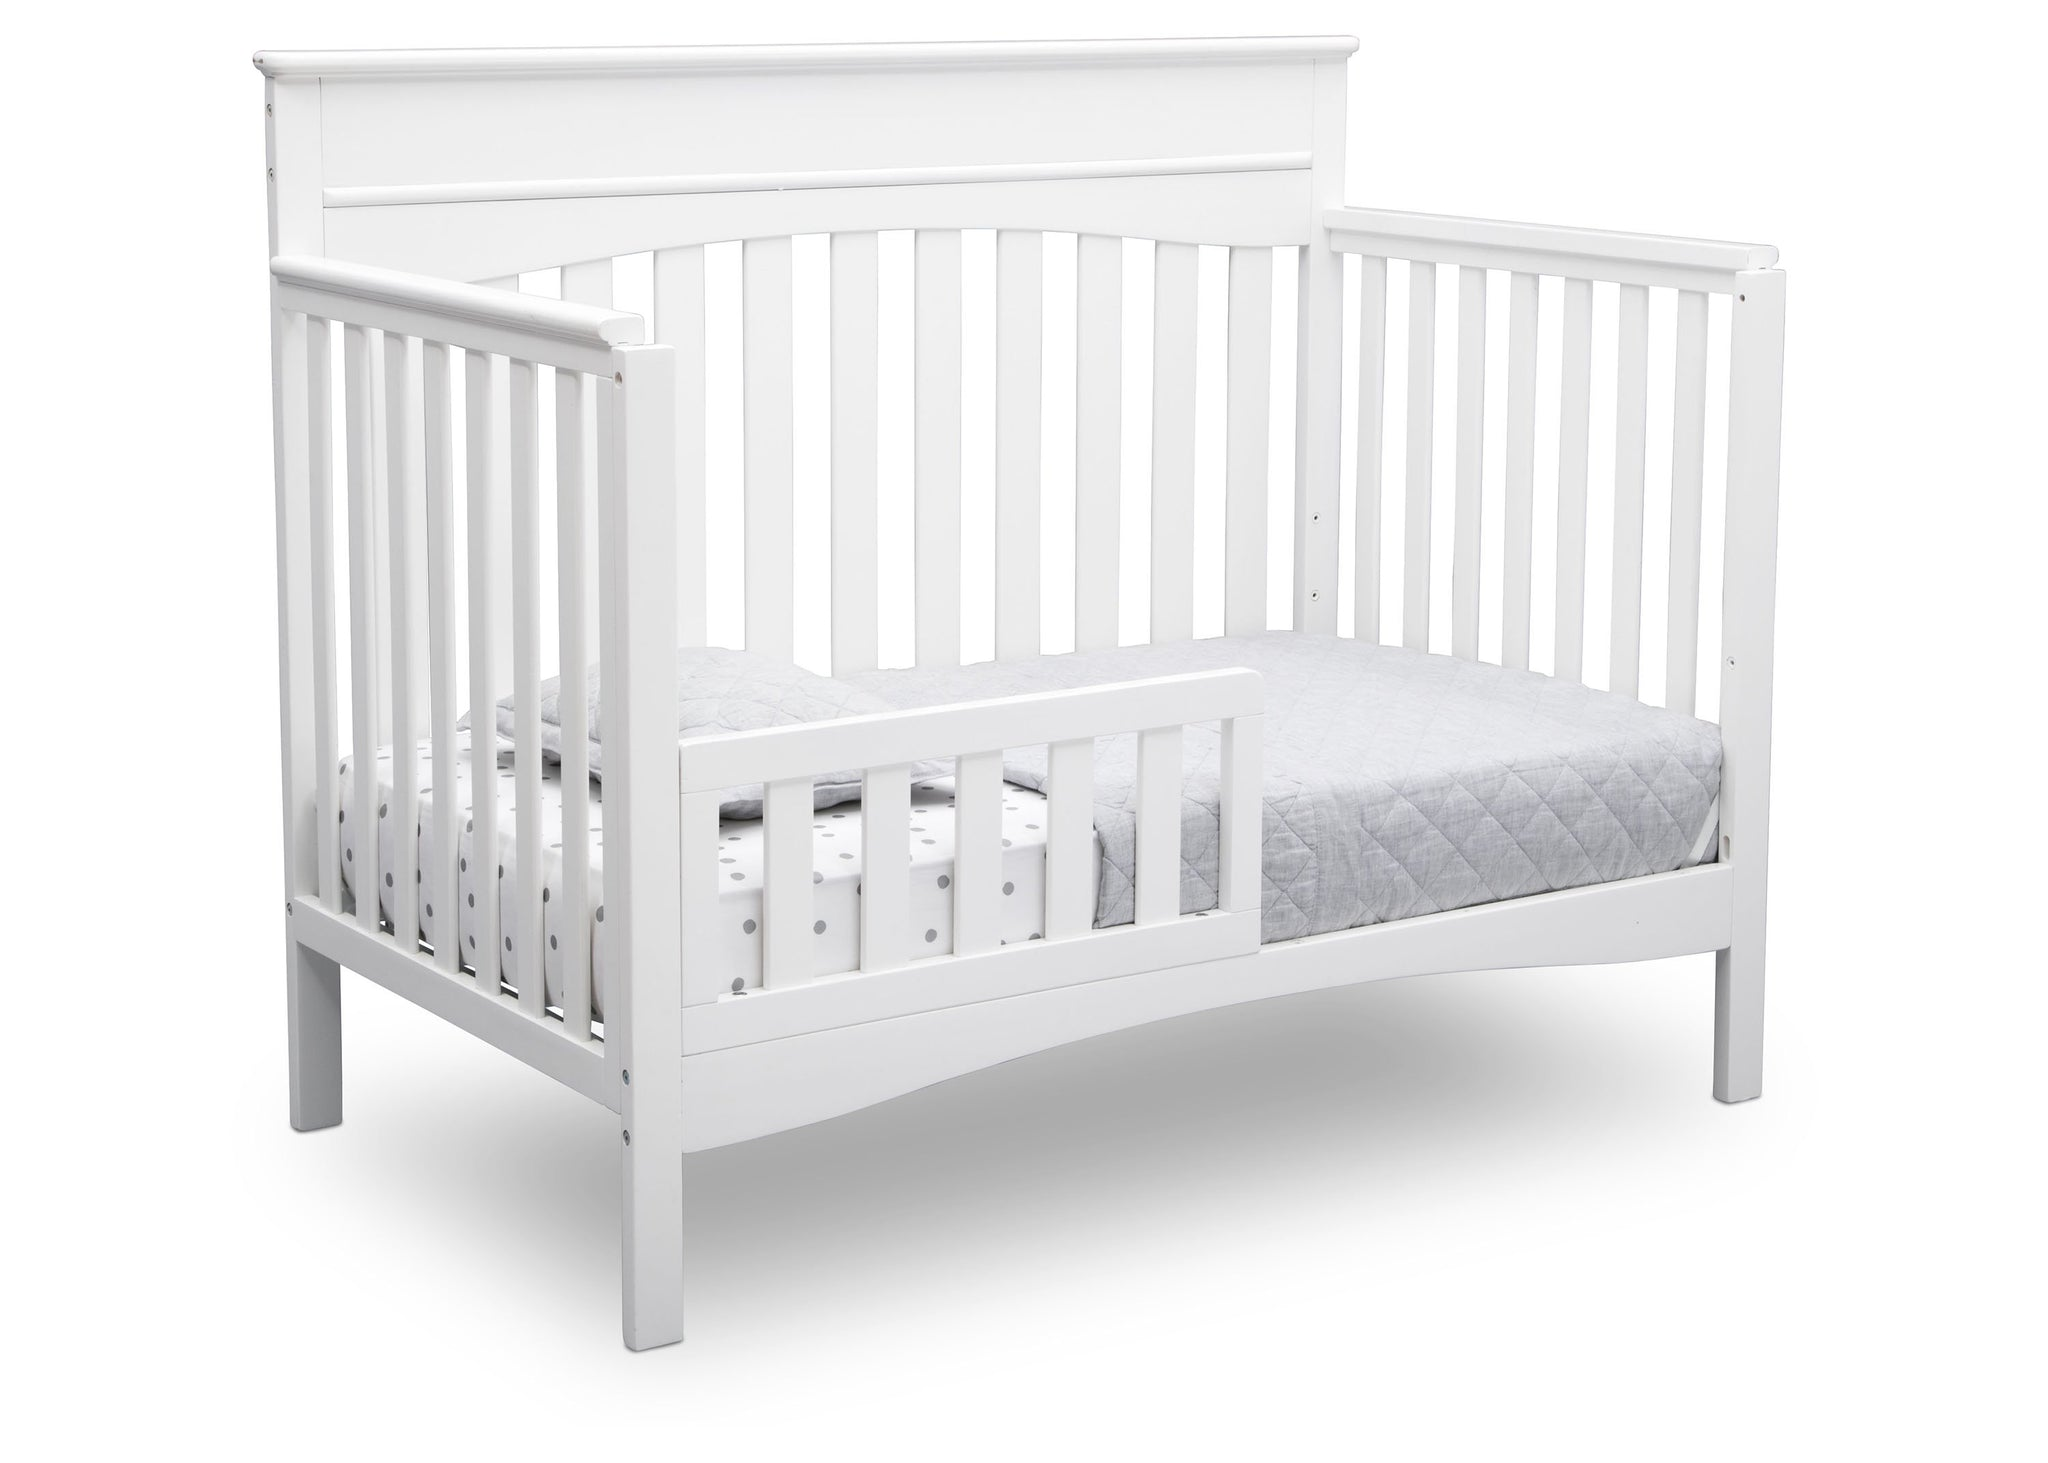 Delta Children Bianca White (130) Skylar 4-in-1 Convertible Crib (558150), Toddler Bed, c4c